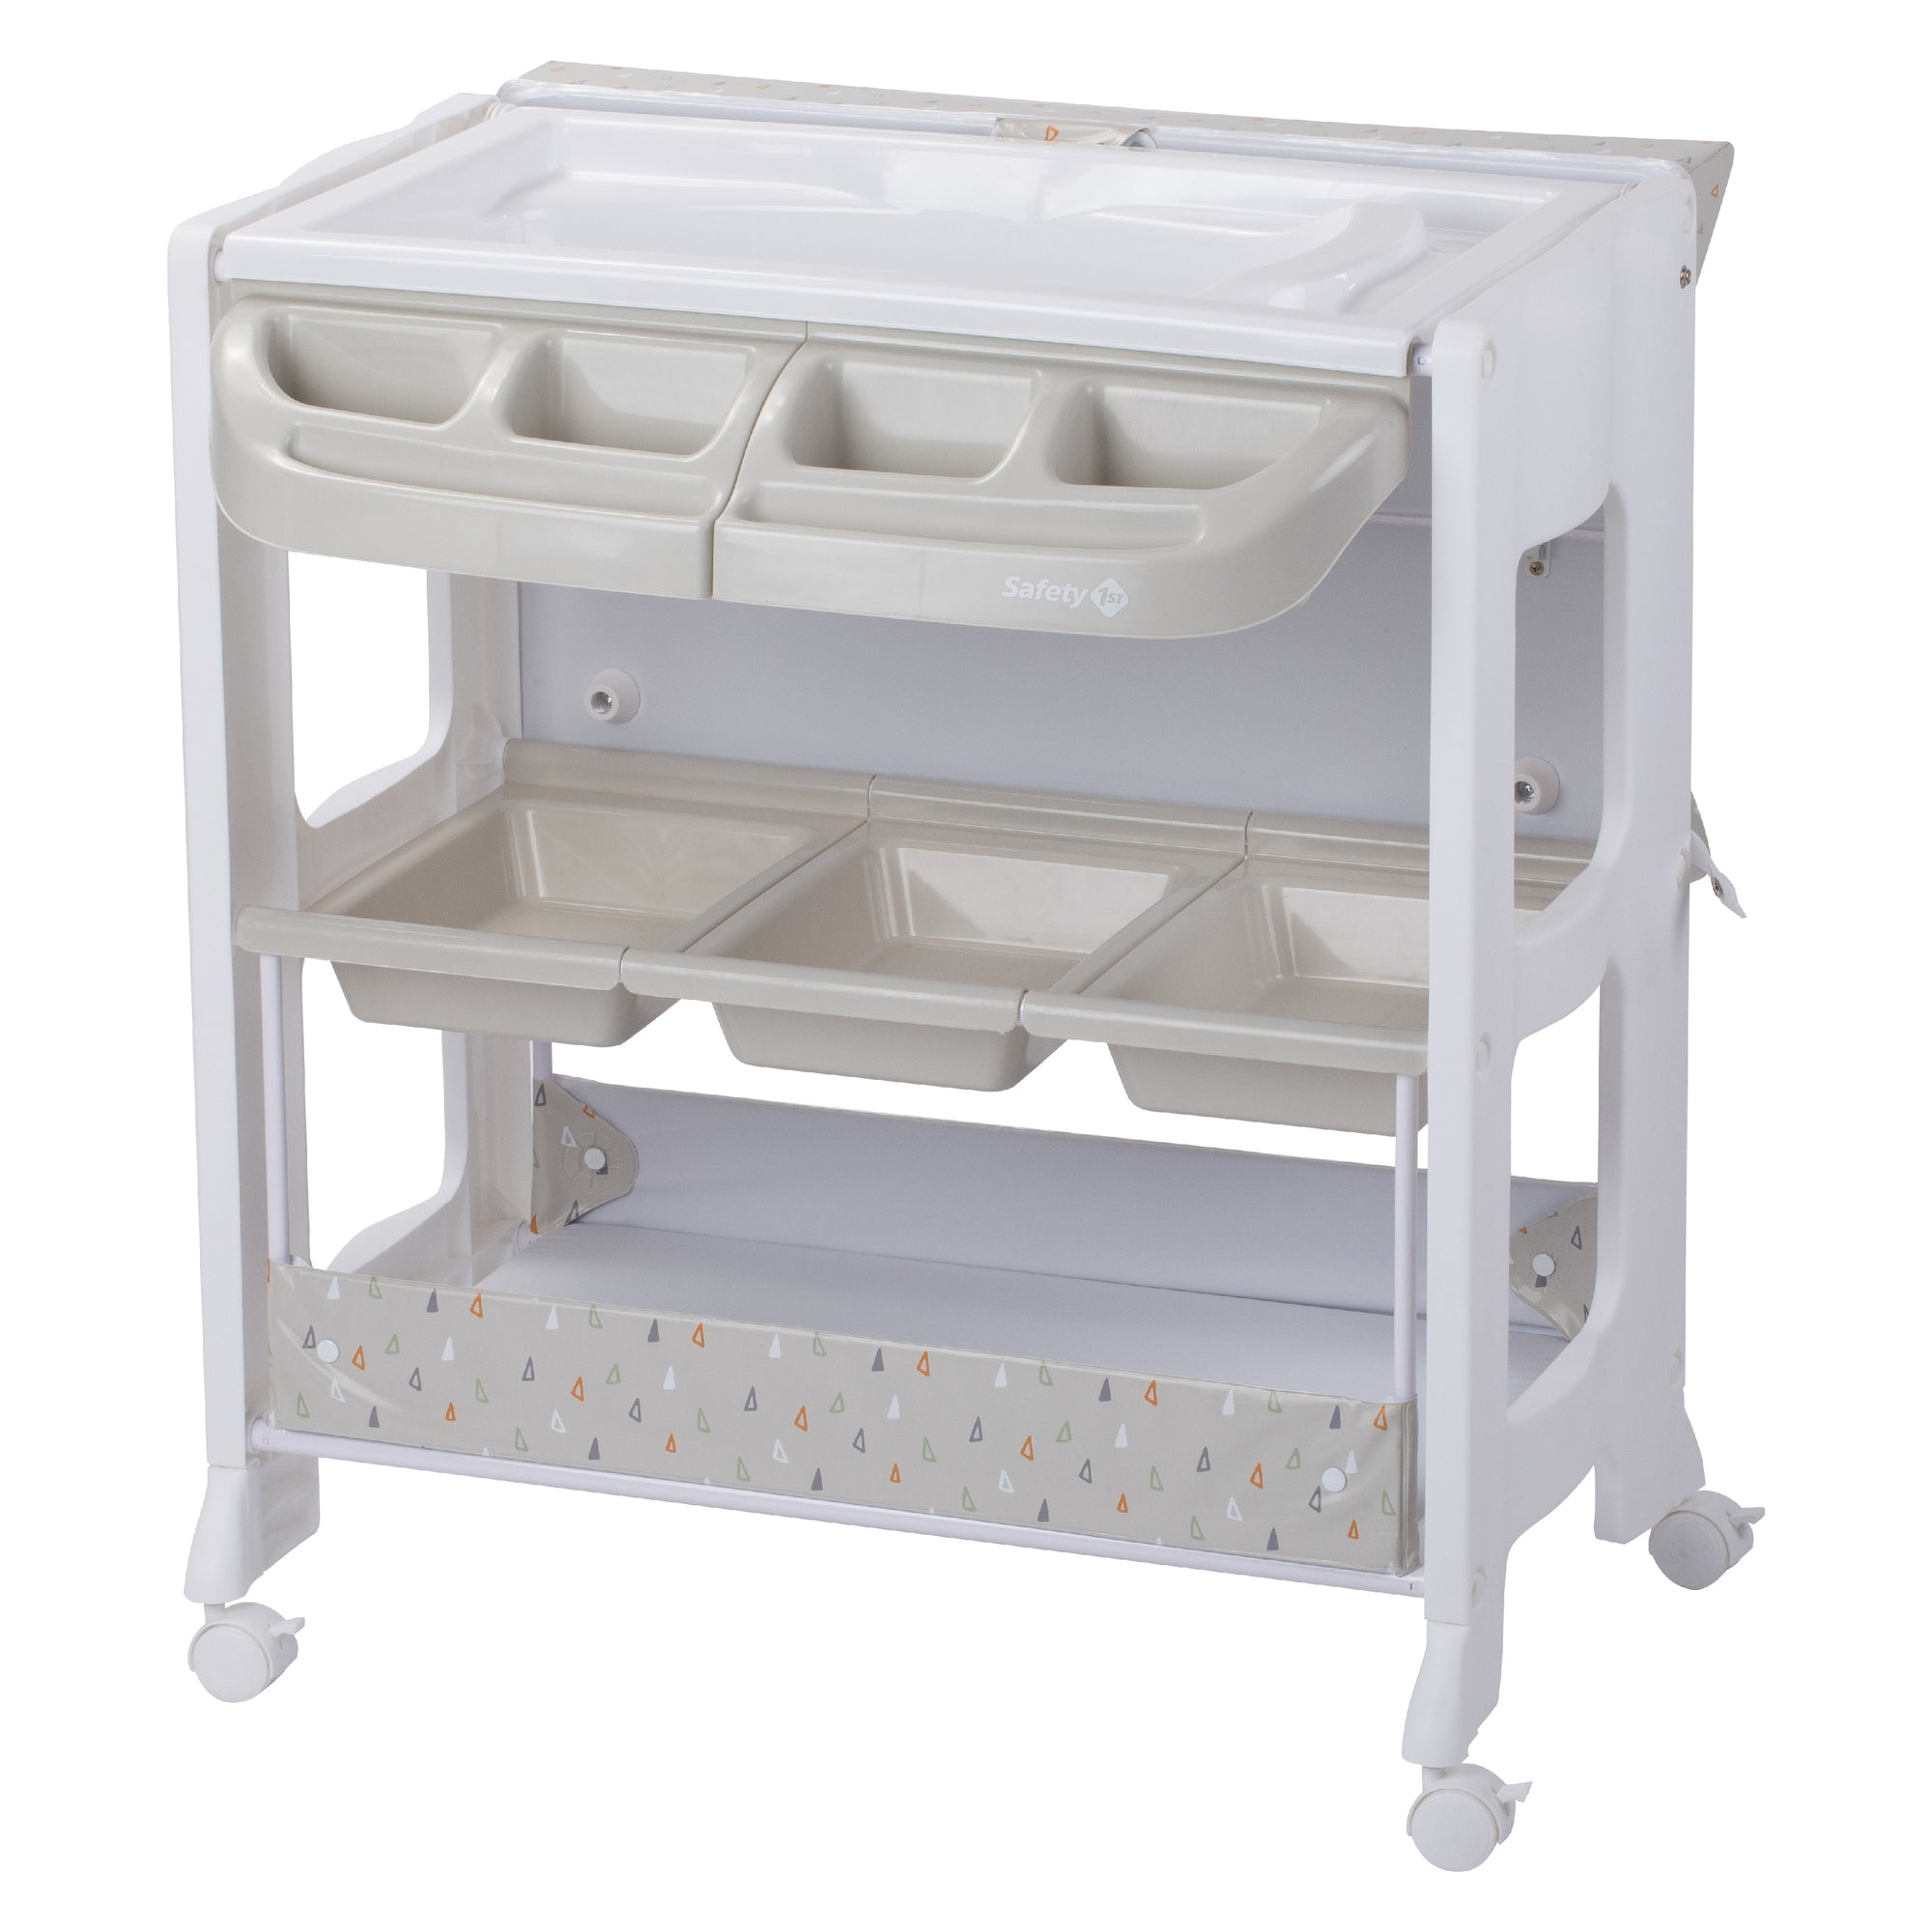 Safety 1st Dolphy Baby Changing Unit - Warm Grey SFE2905-191000 - Picket&Rail